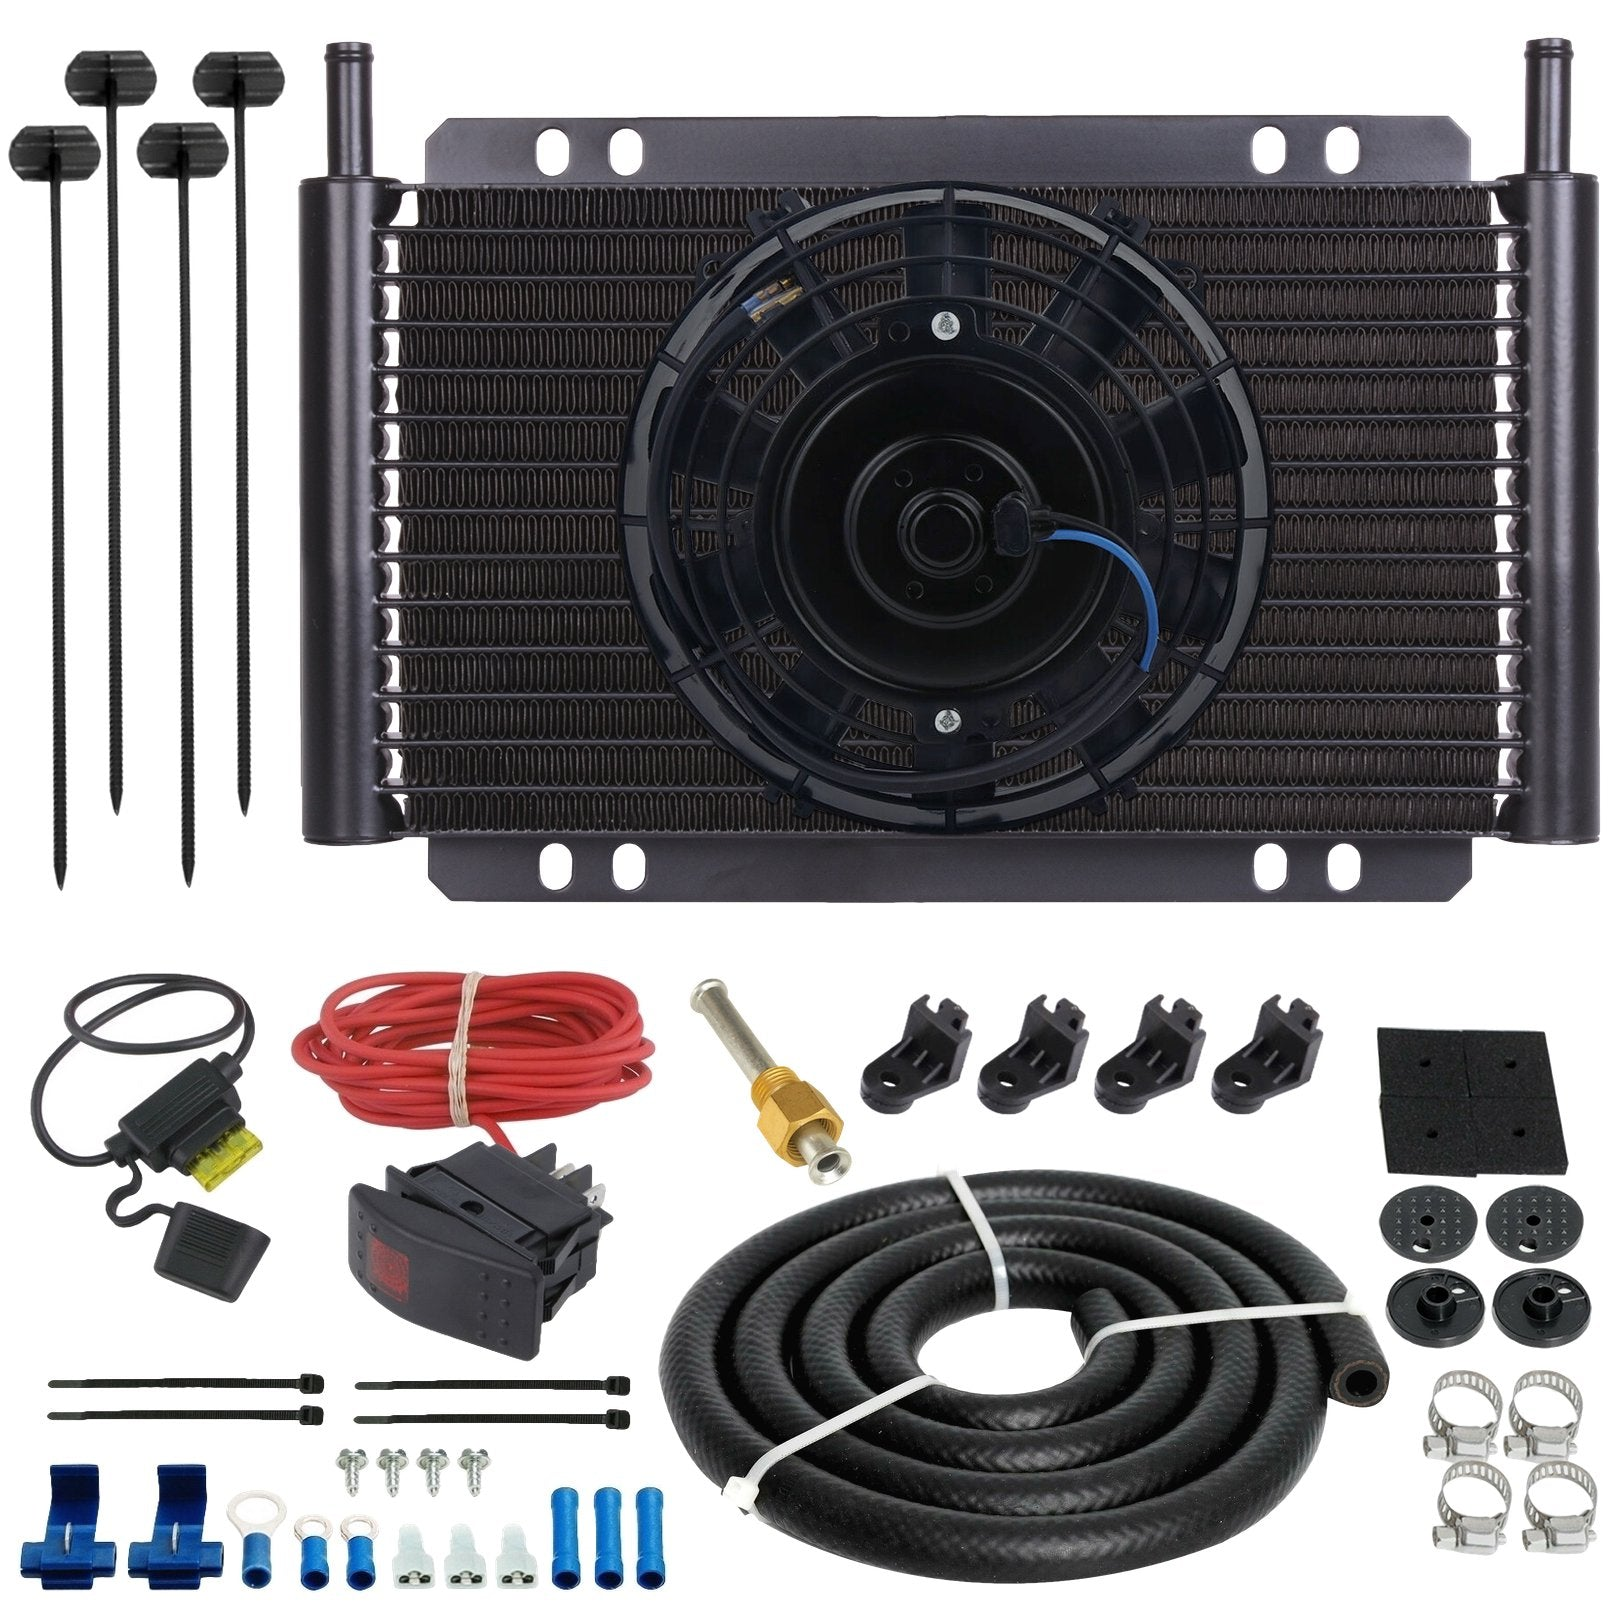 "17 Row Engine Transmission Oil Cooler 6"" Inch Electric Cooling Fan Toggle Rocker Bar Switch Wiring Kit-Oil Cooler-American Volt-6AN-American Volt"